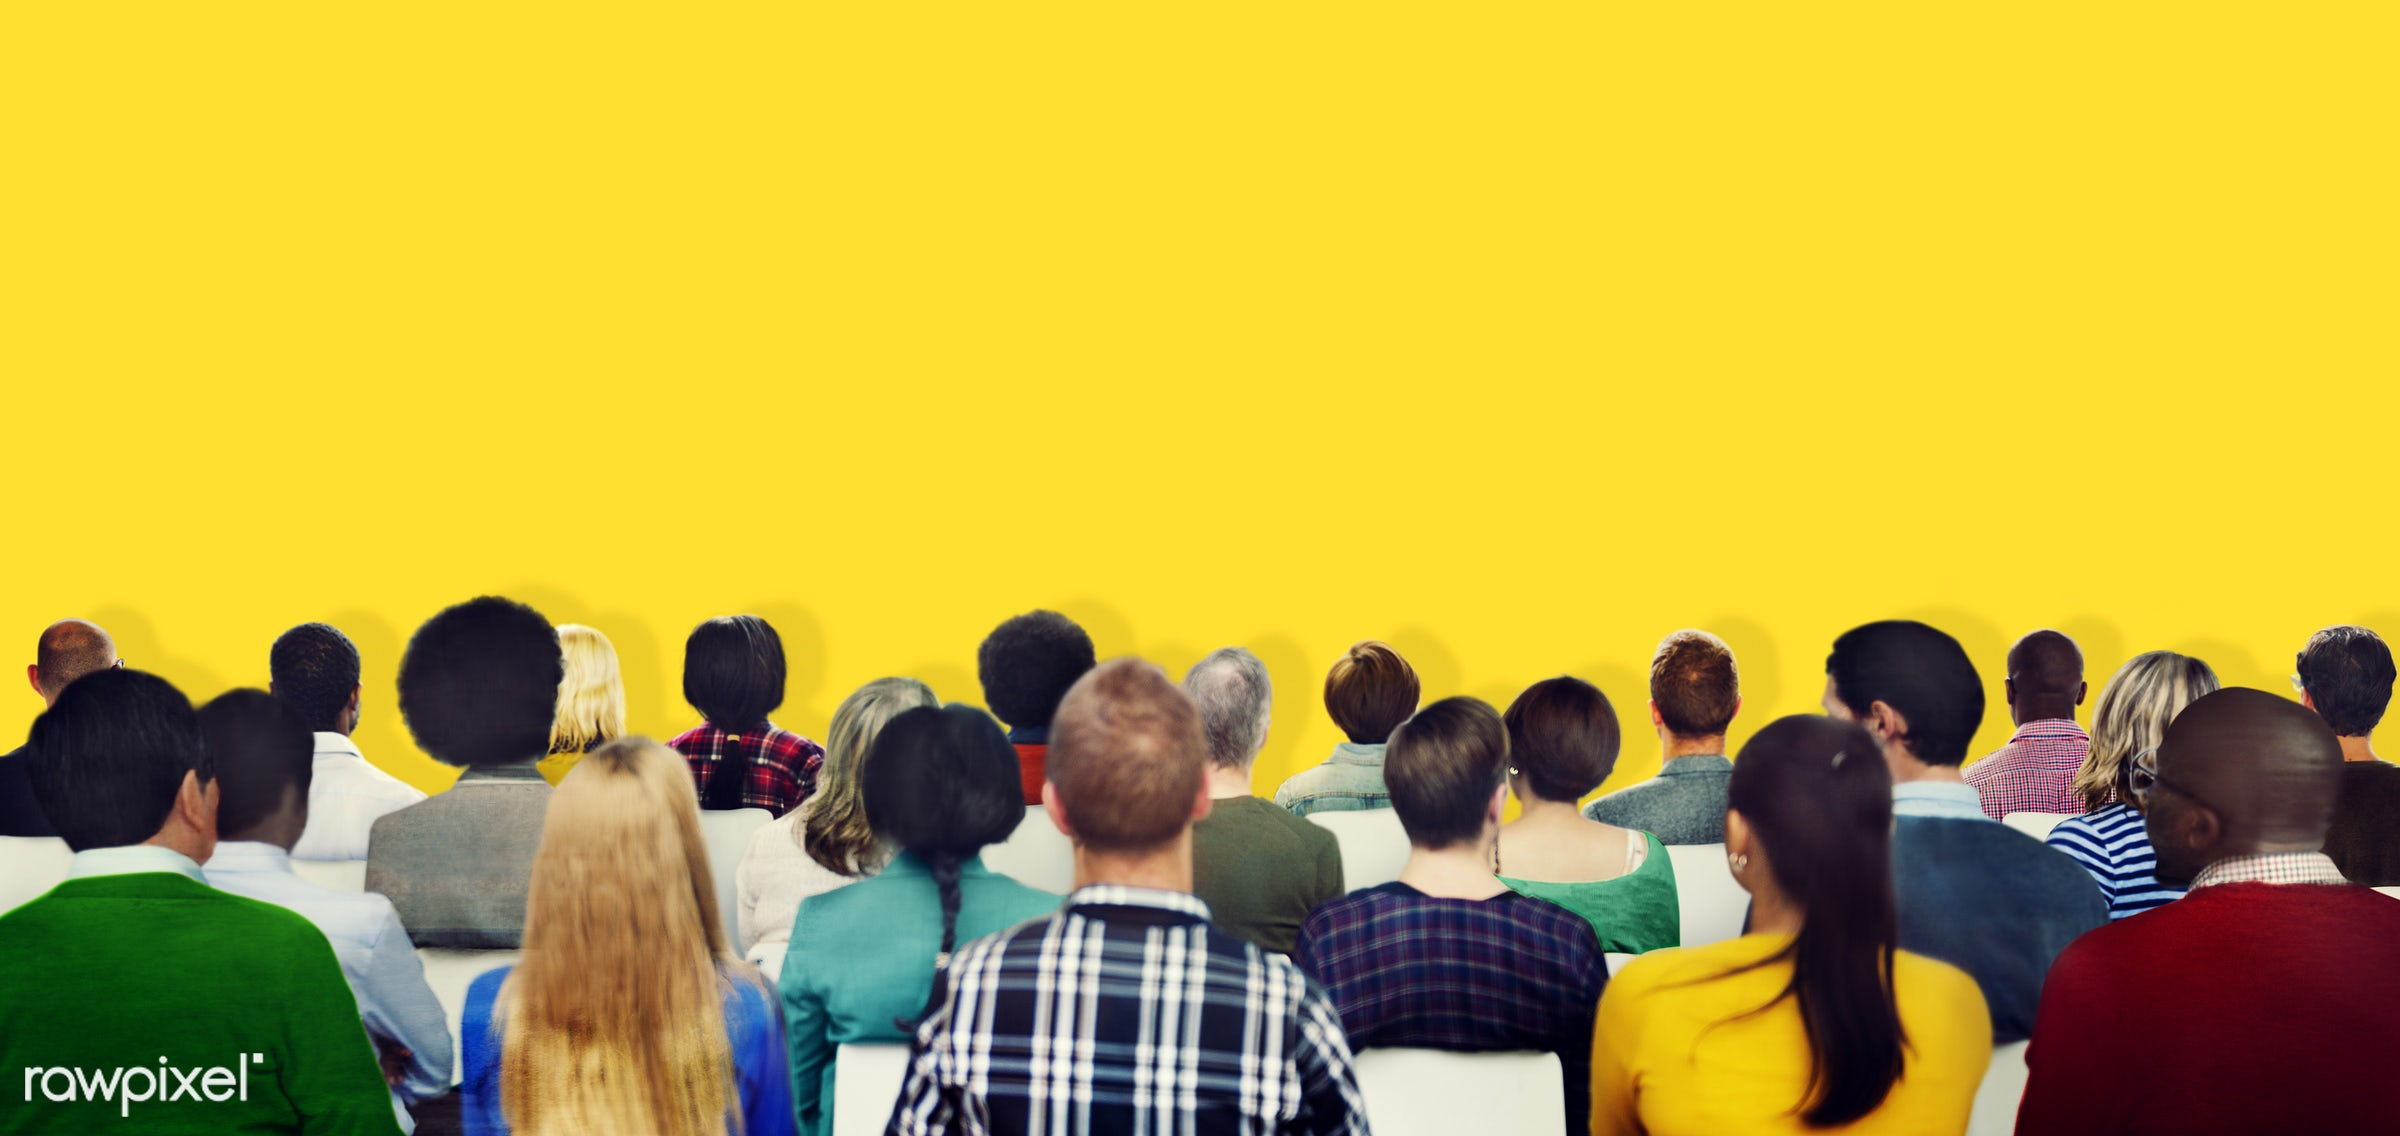 audience, backdrop, background, casual, colourful, communication, community, conference, connection, copy space, corporate,...